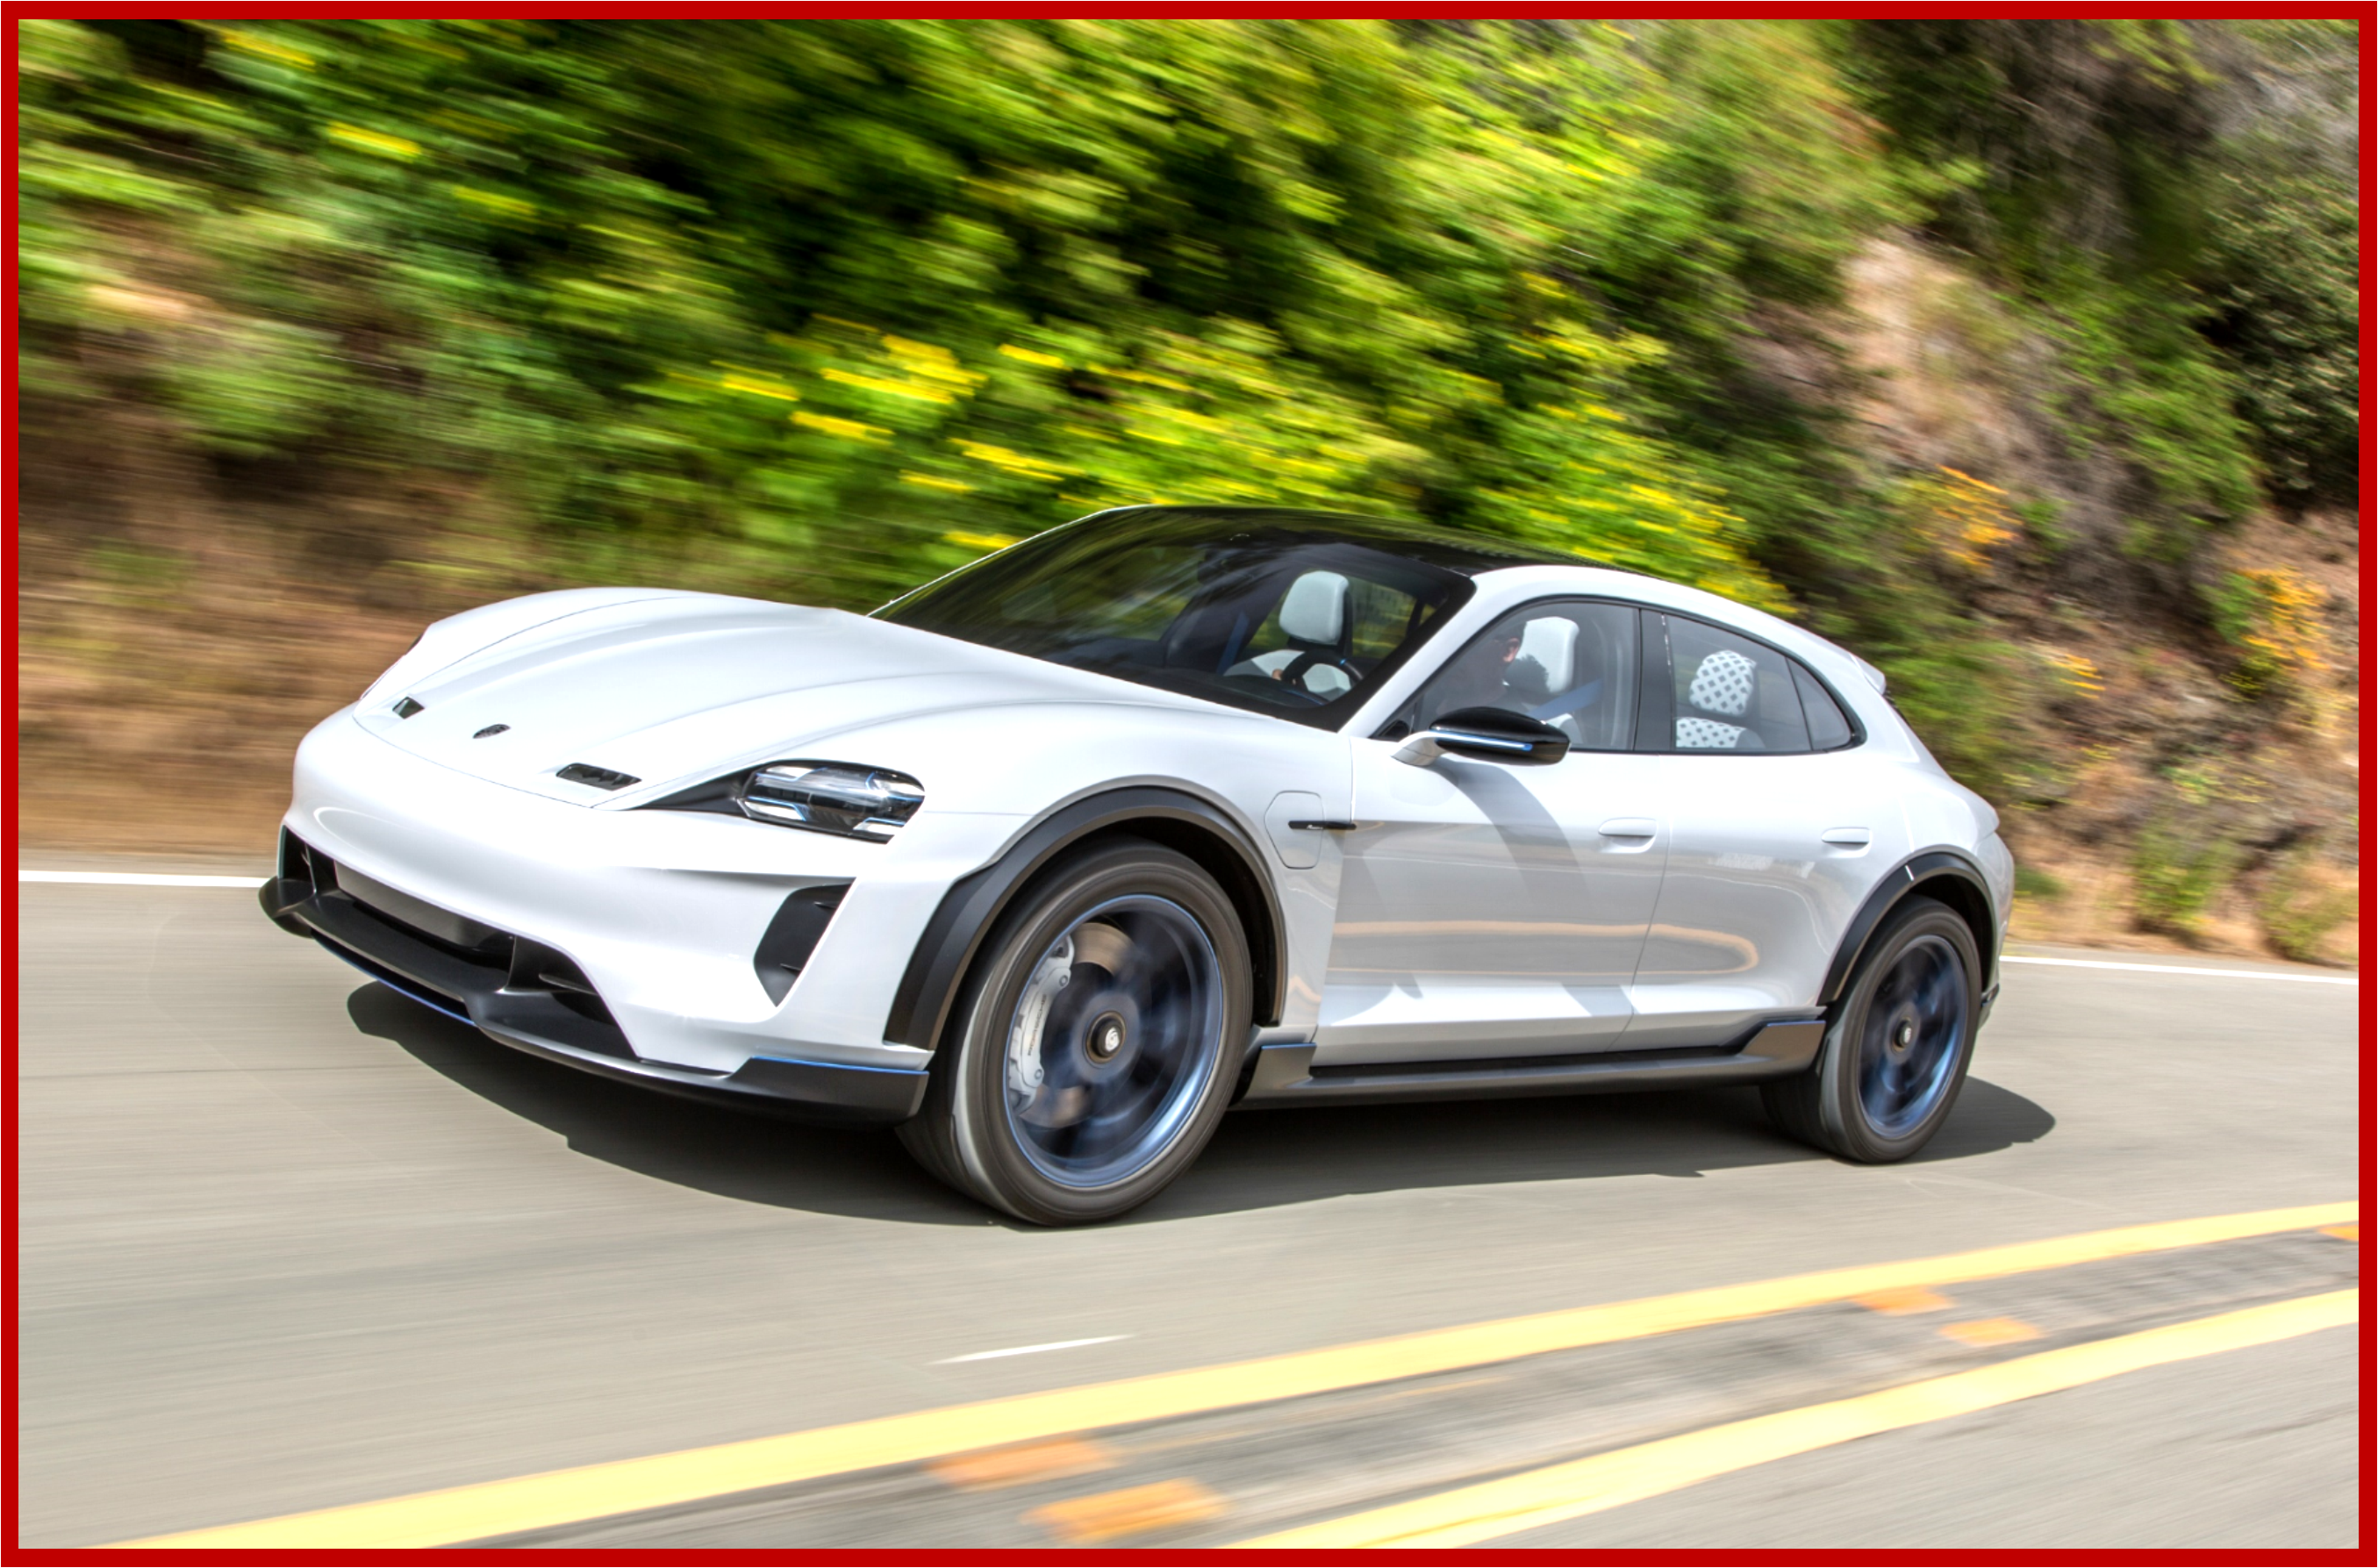 AutoInformed.com on 2019 Porsche Mission E Cross Turismo